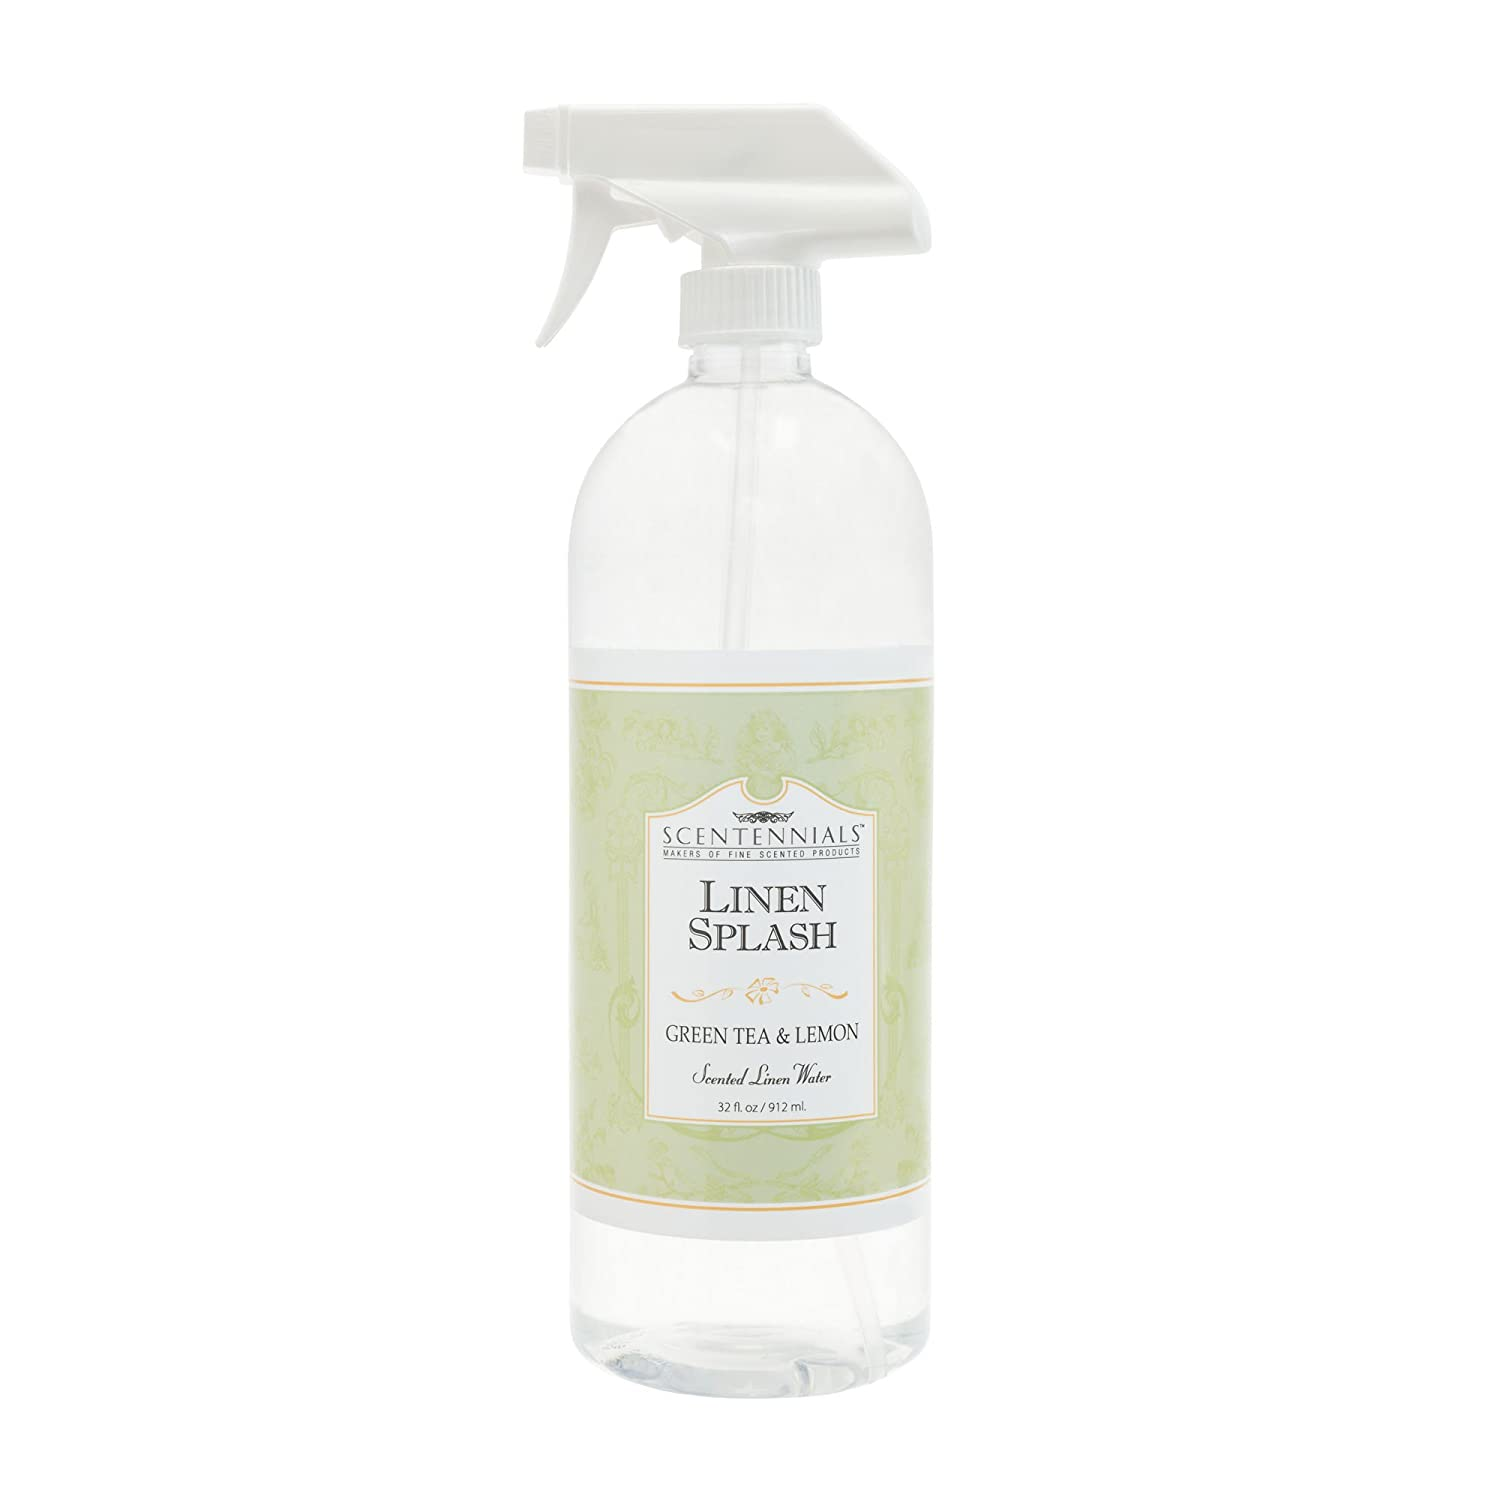 Scentennials Green Tea & Lemon Linen Spray 32oz - A Must Have for All Your linens, Laundry Basket or just Spray Around The House.